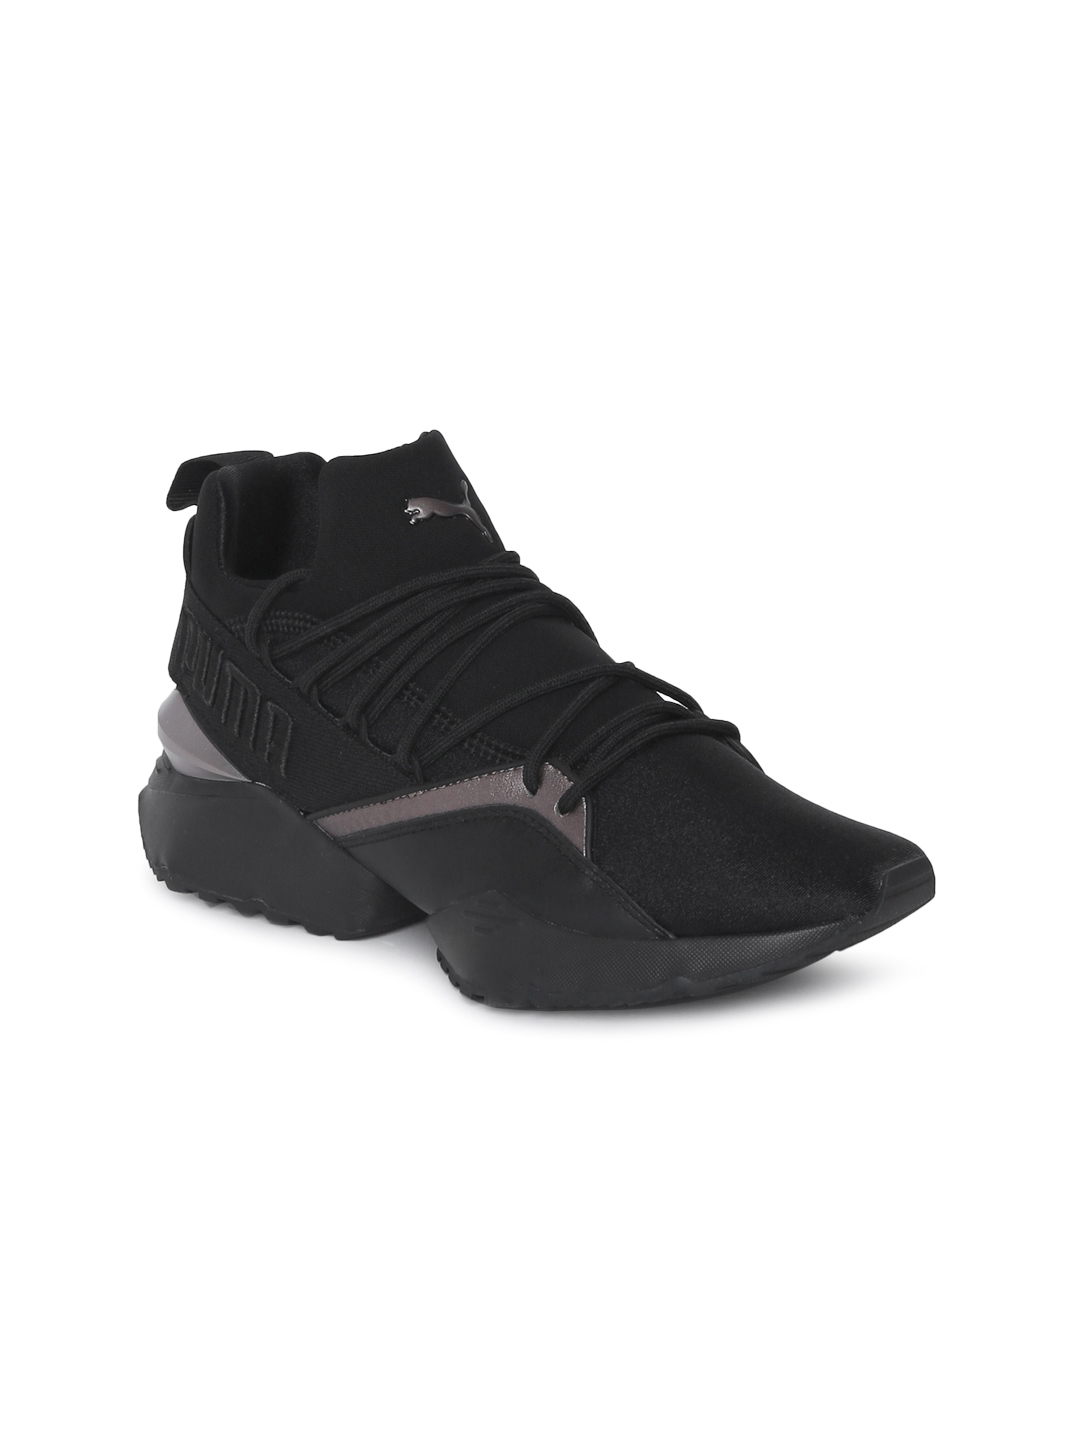 1fc8978ed0b Buy Puma Women Black Muse Maia Luxe Sneakers - Casual Shoes for ...